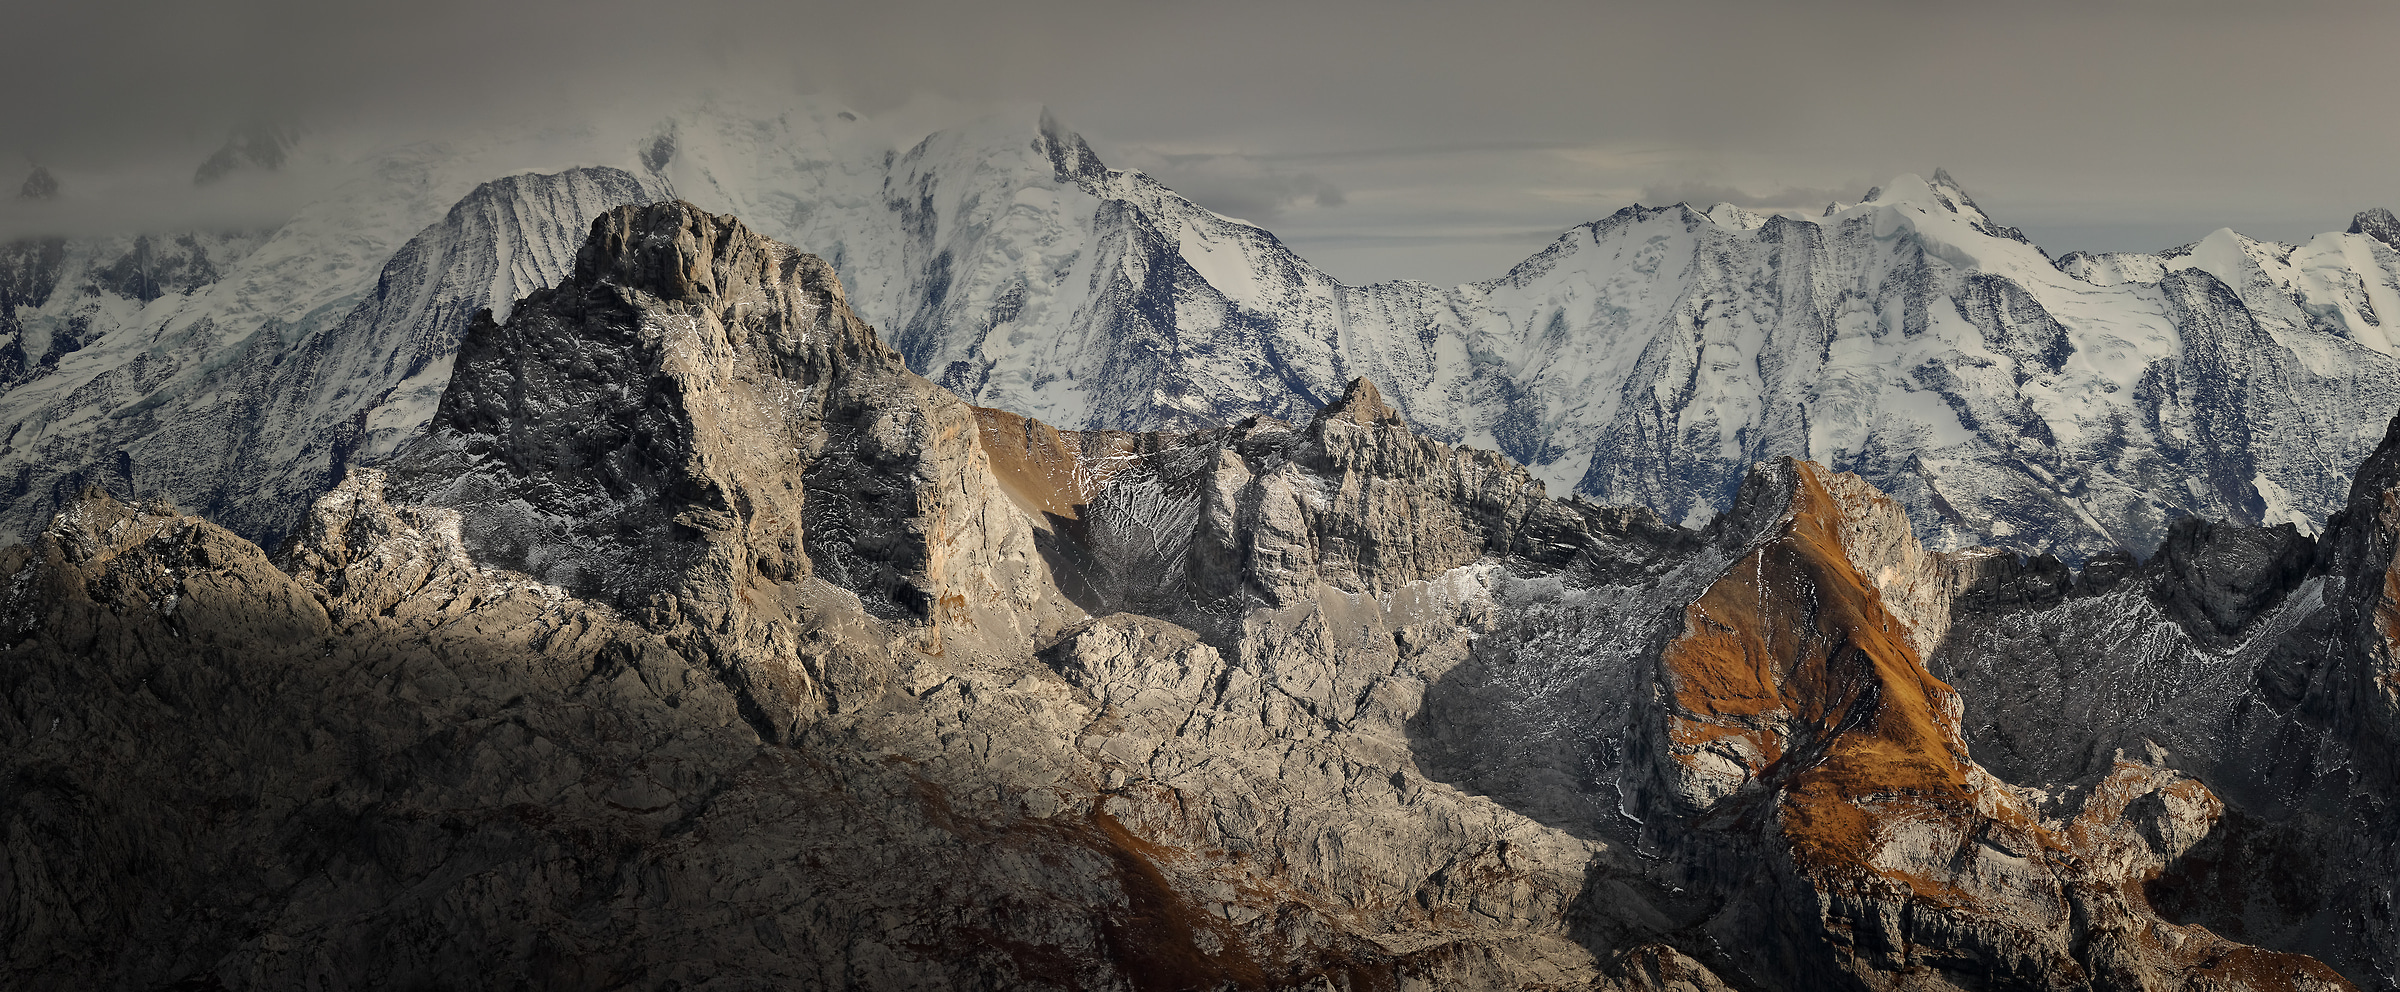 111 megapixels! A very high resolution, large-format VAST photo of mountains in France; created by Alexandre Deschaumes in Jallouvre Summit, Haute Savoie, France